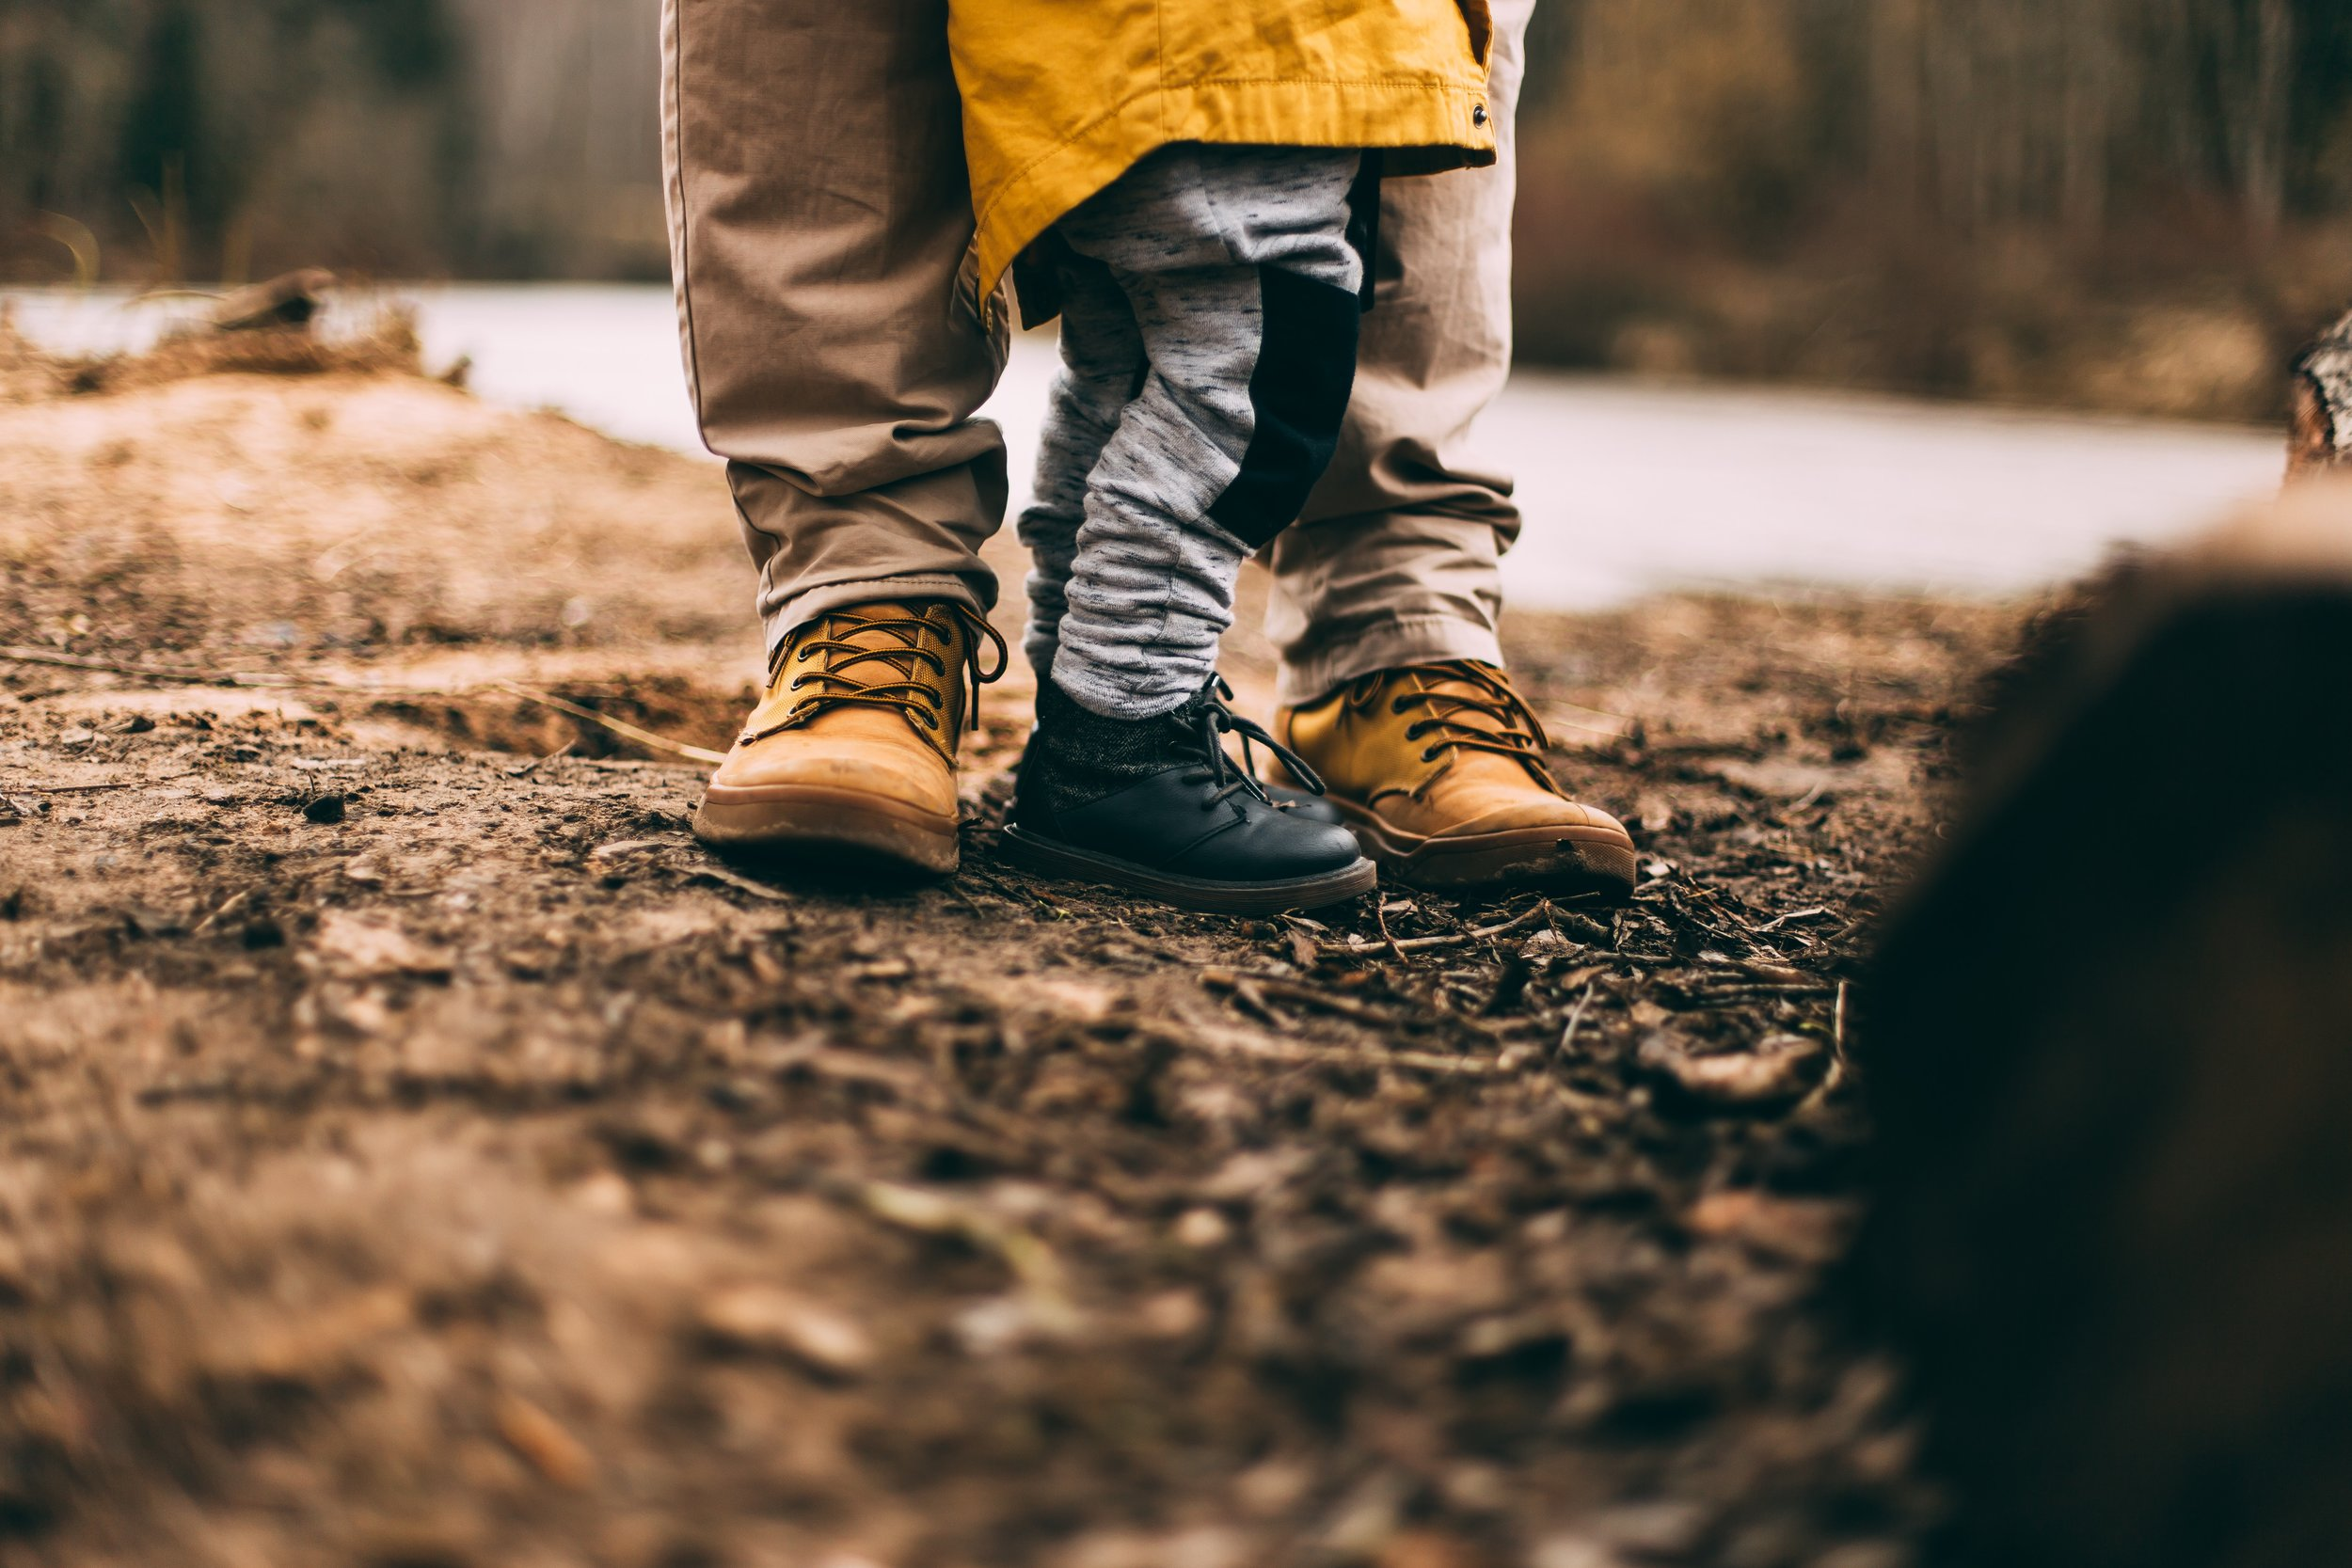 two sets of legs and feet. dad and son wearing boots, standing on the dirt, living in the present moment.